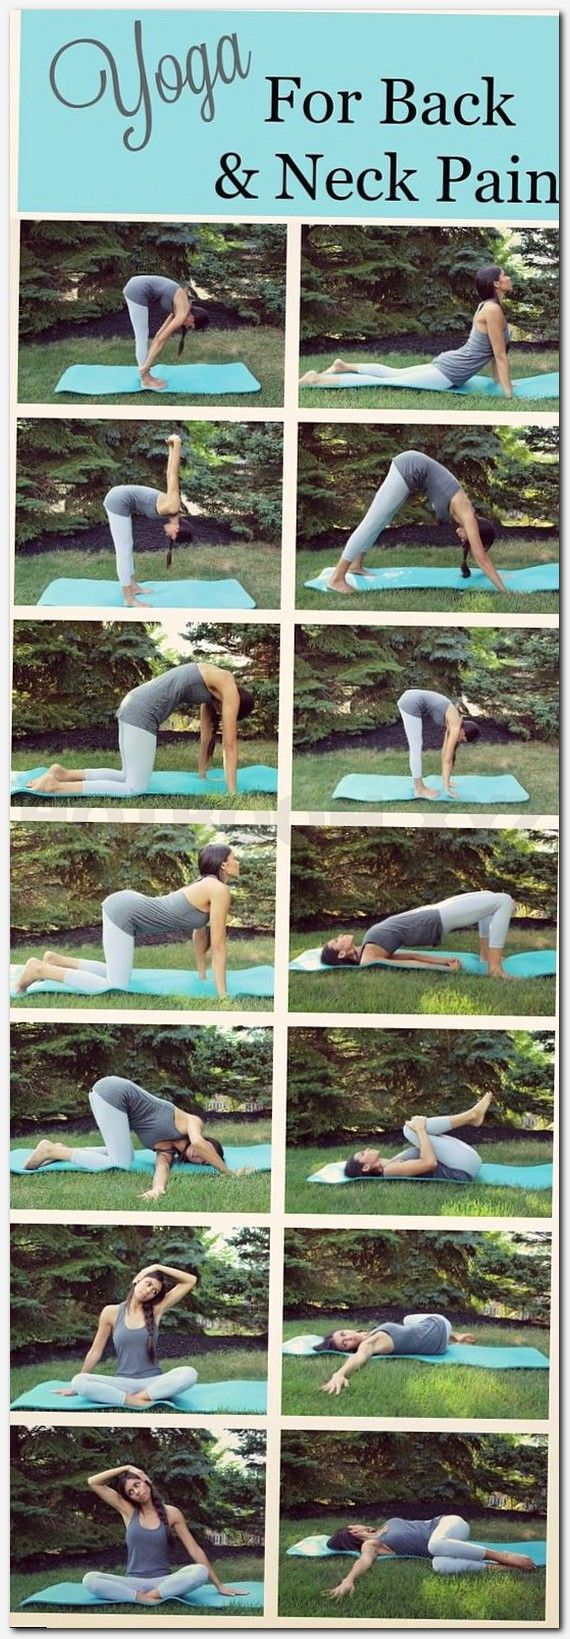 yoga poses for overweight beginners, hatha flow yoga, yoga asanas names, what is the best exercise to lose weight, do ear seeds work for weight loss, exercises to make you lose weight fast, how to do power yoga for weight loss at home, yoga steps video, d